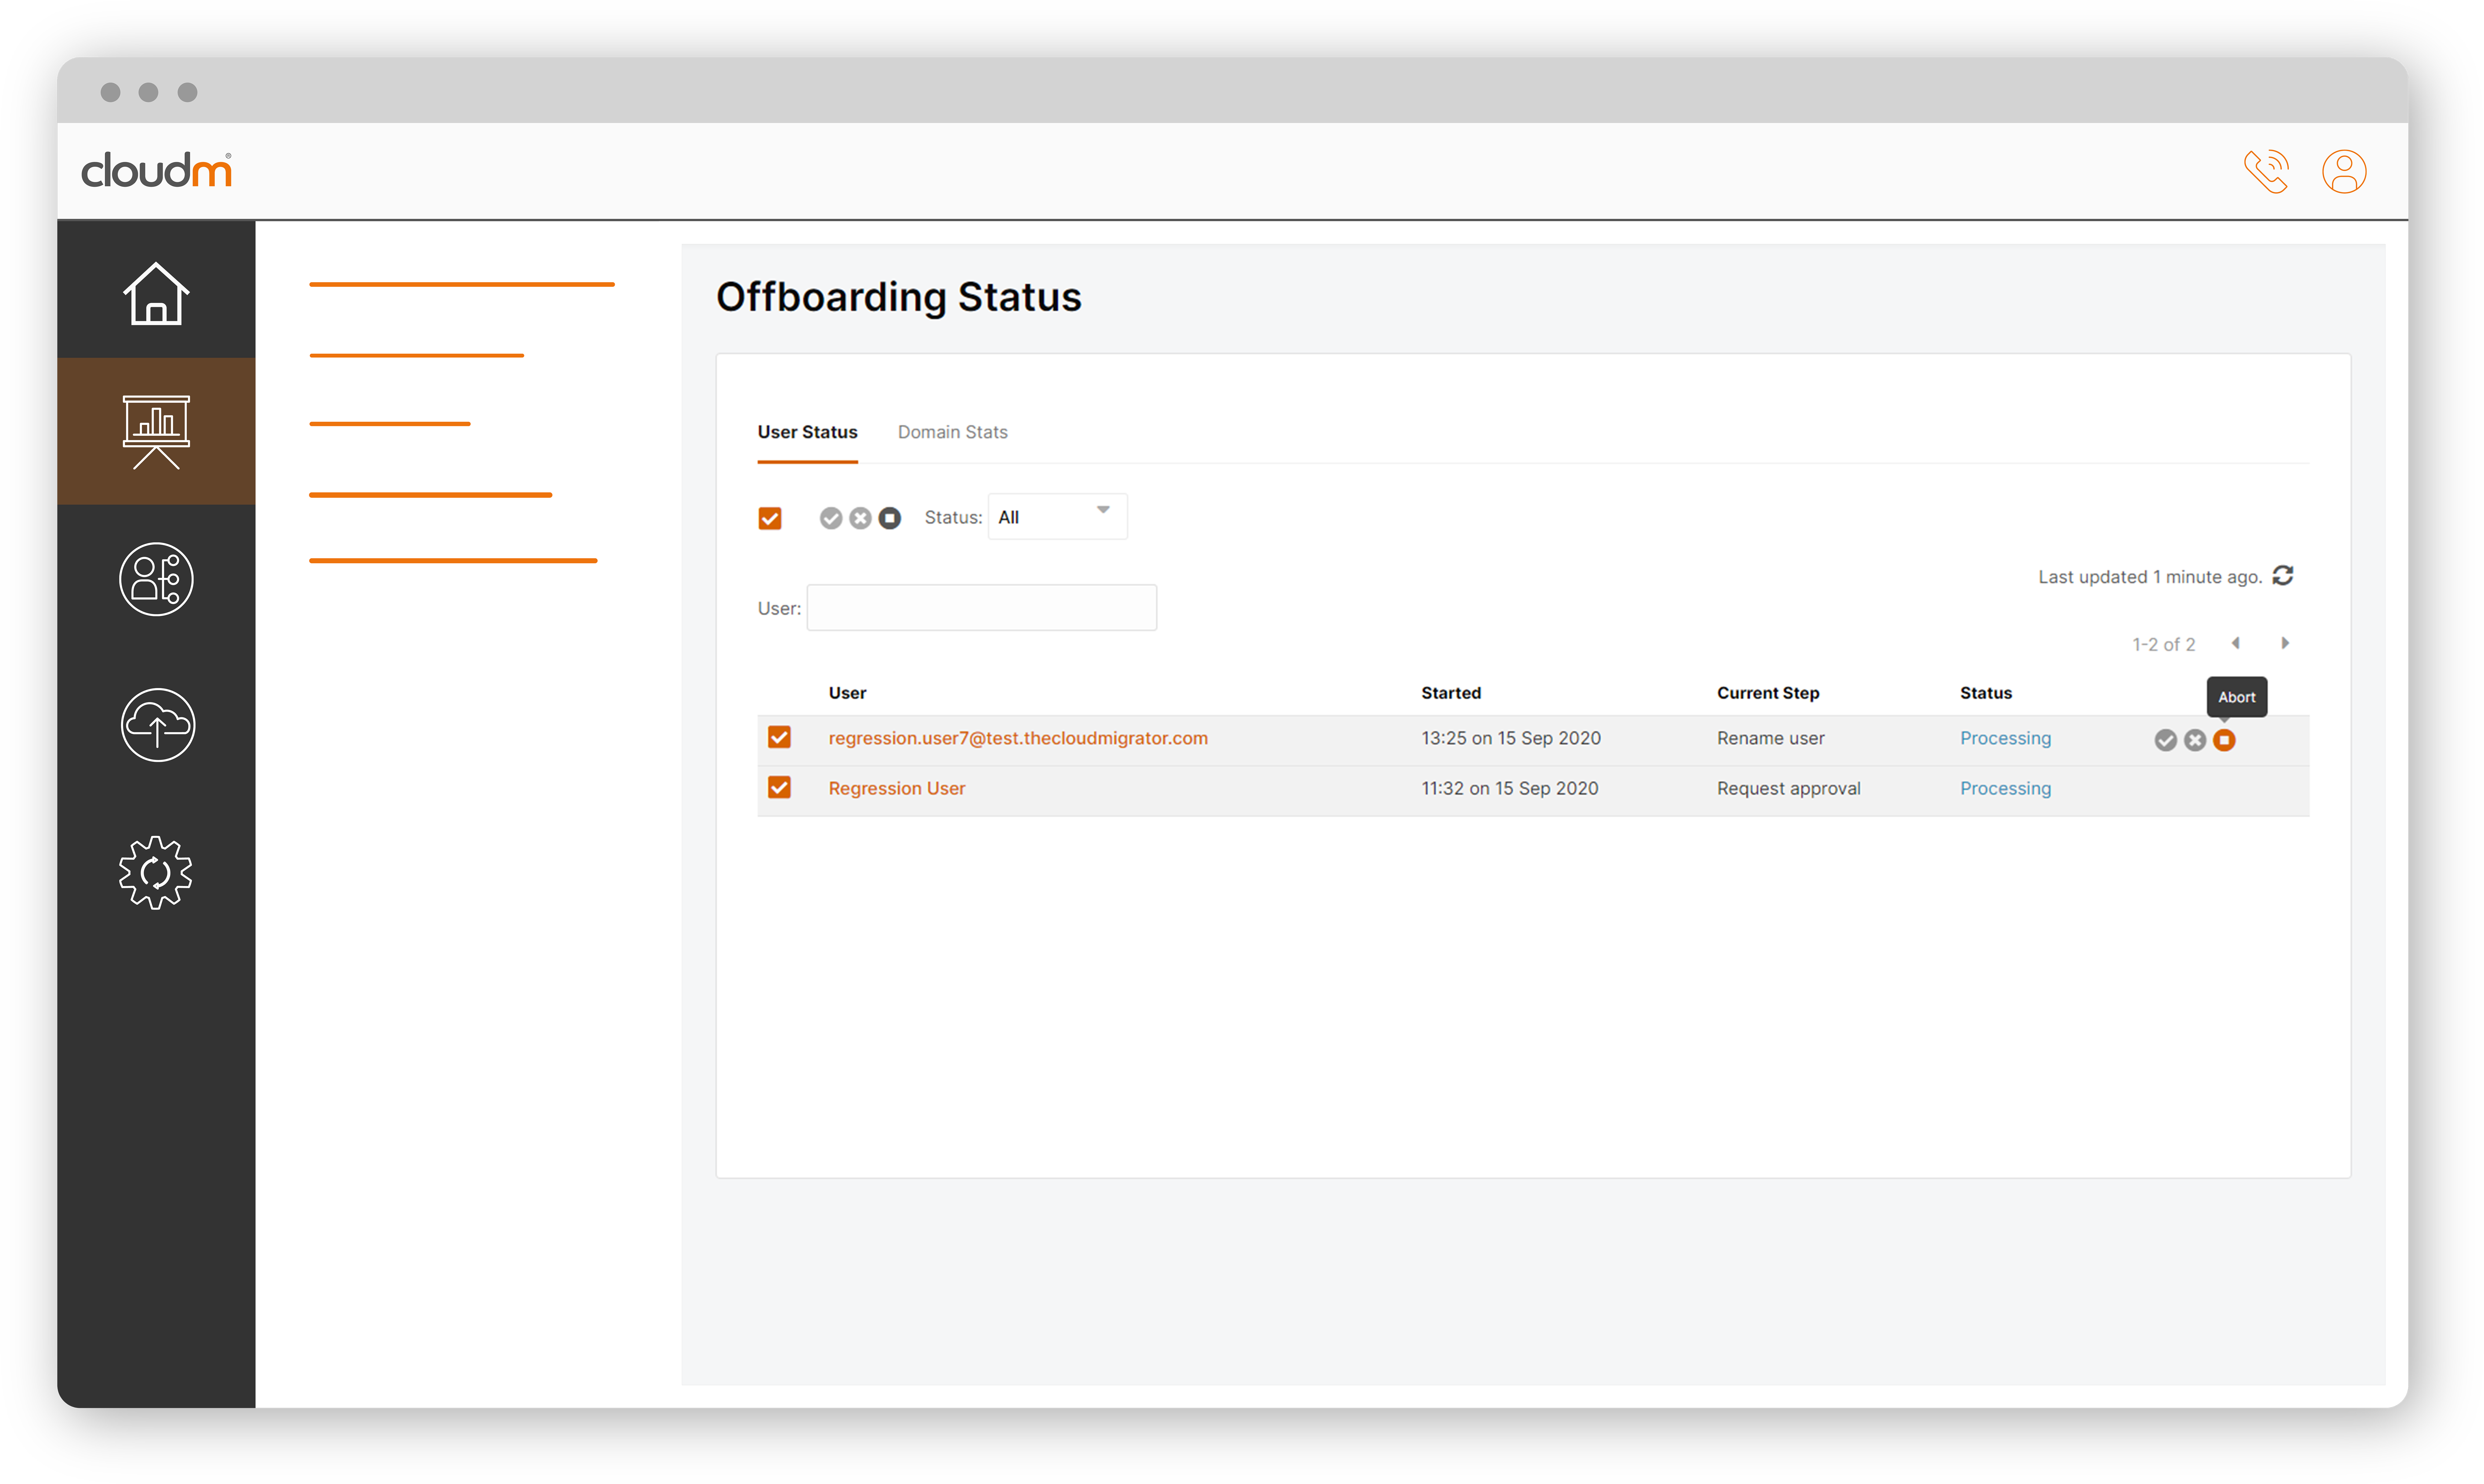 Offboarding status select all